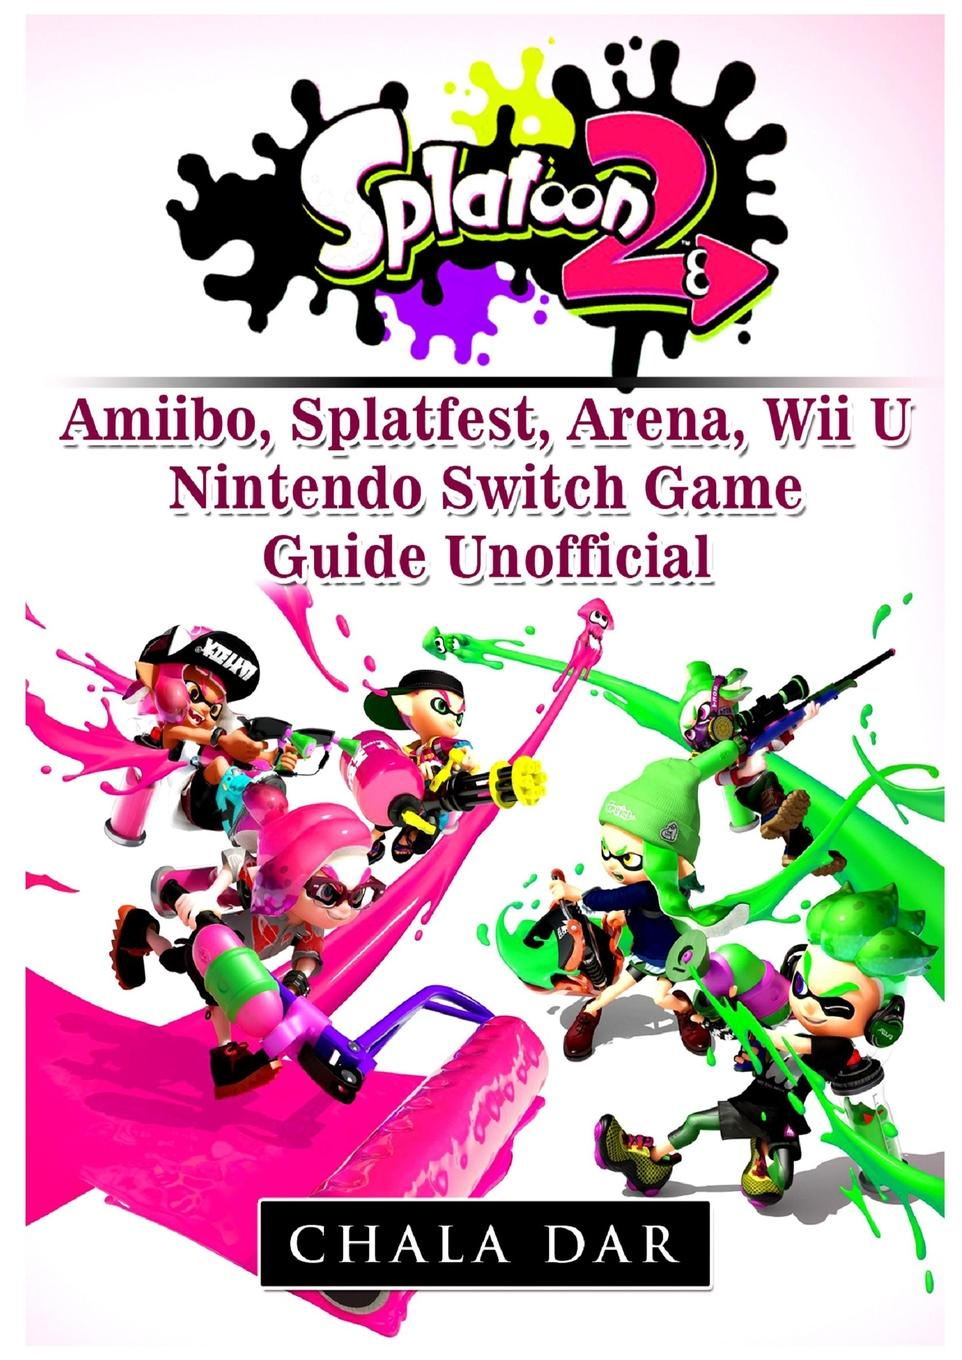 Chala Dar Splatoon 2 Amiibo, Splatfest, Arena, Wii U, Nintendo Switch, Game Guide Unofficial edge c how to write your best story ever top tips and trade secrets from the experts